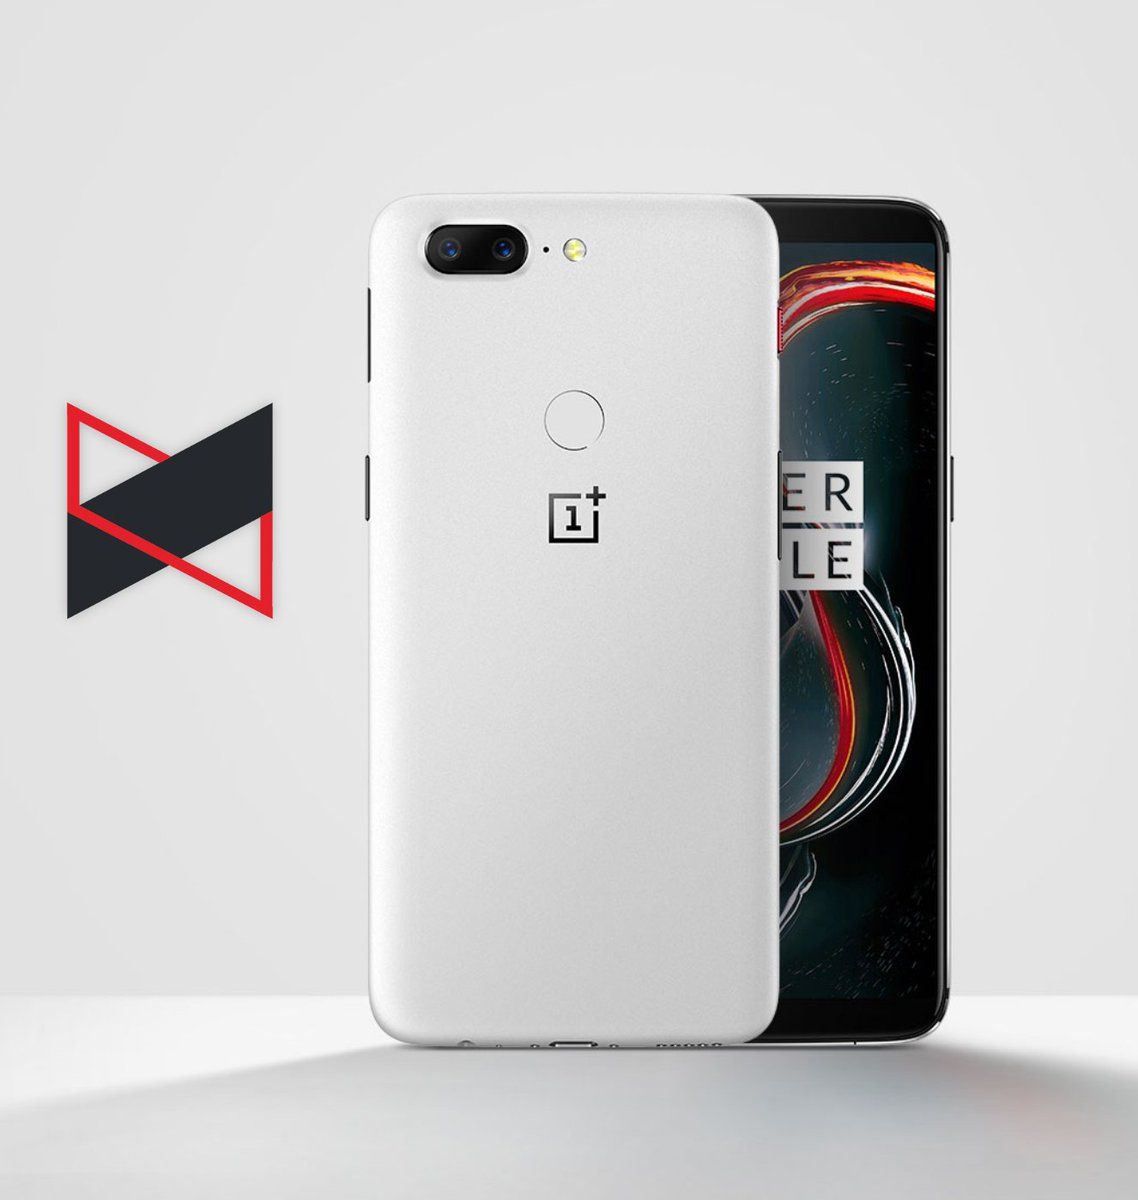 Giving away 35 of the Budget Smartphone of the Year: Sandstone White @OnePlus 5Ts!  Head over to enter here: https://instagram.com/p/BdlcxFalS3W/?taken-by=mkbhd…